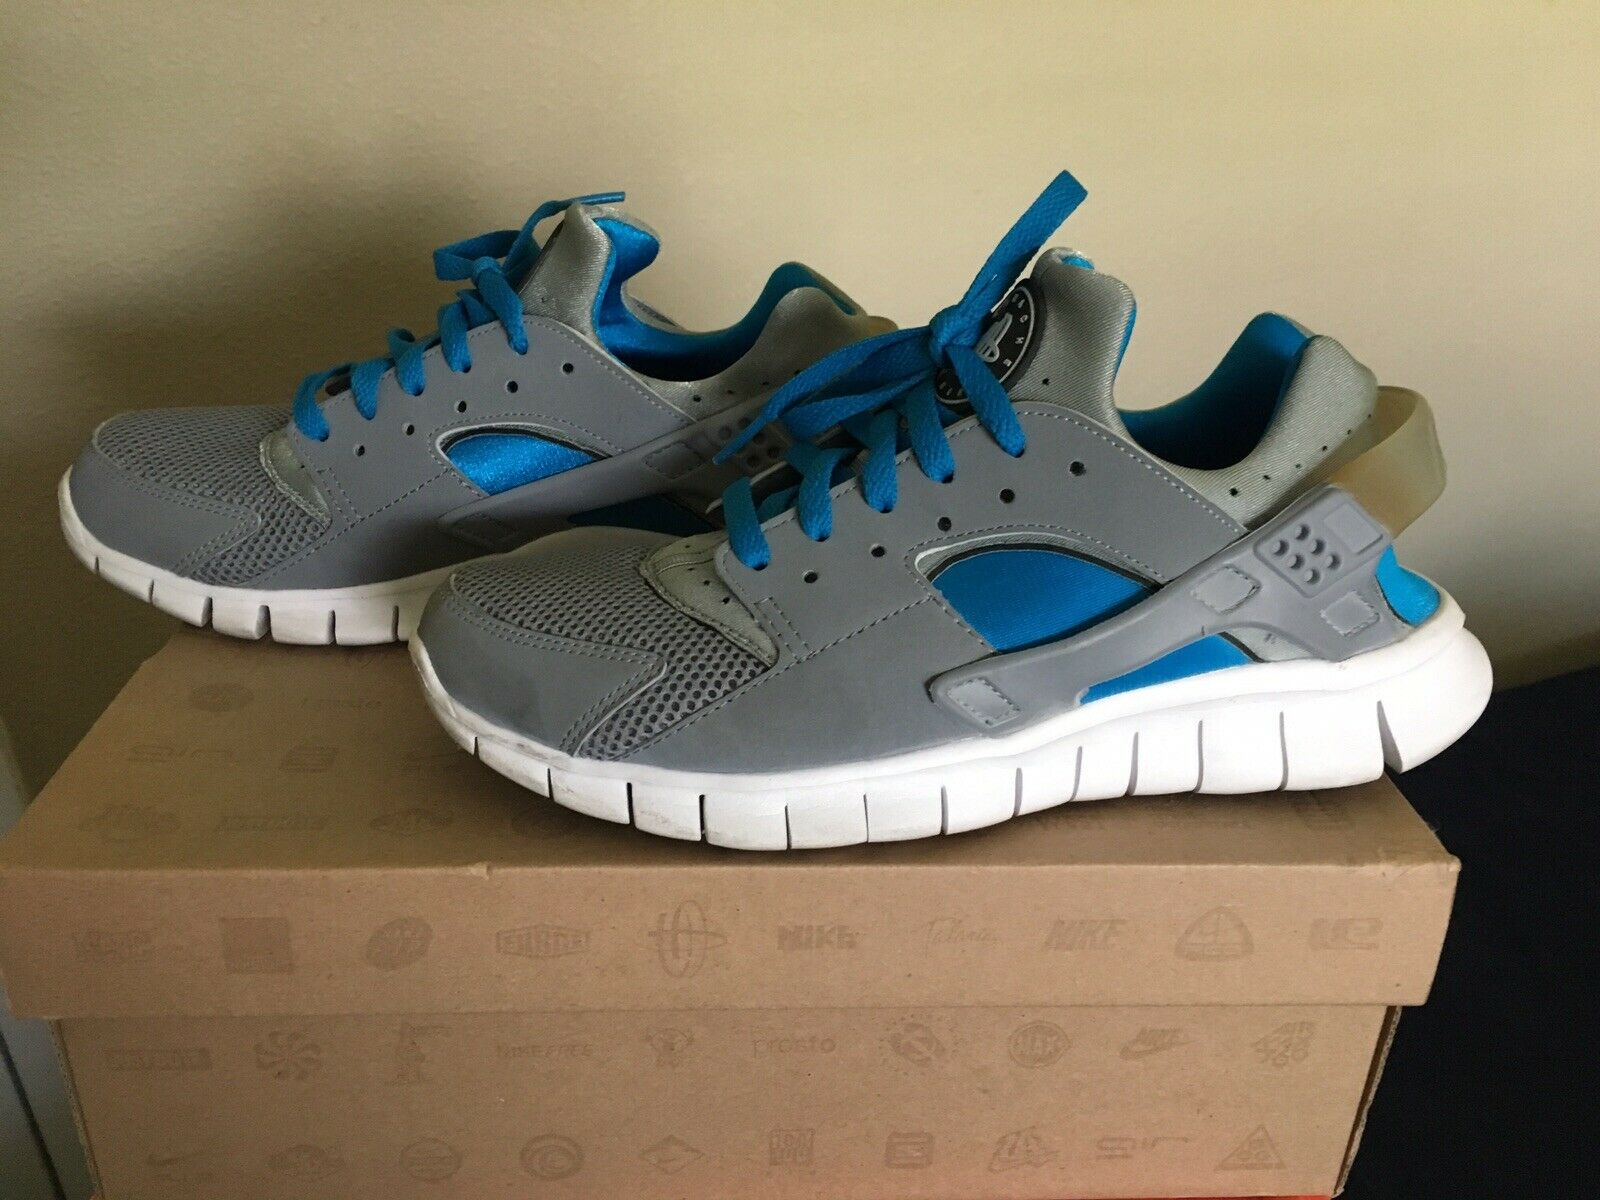 Pre Owned Nike Huarache Free 2012 Stealth Stealth-White 487654-014 Size 8